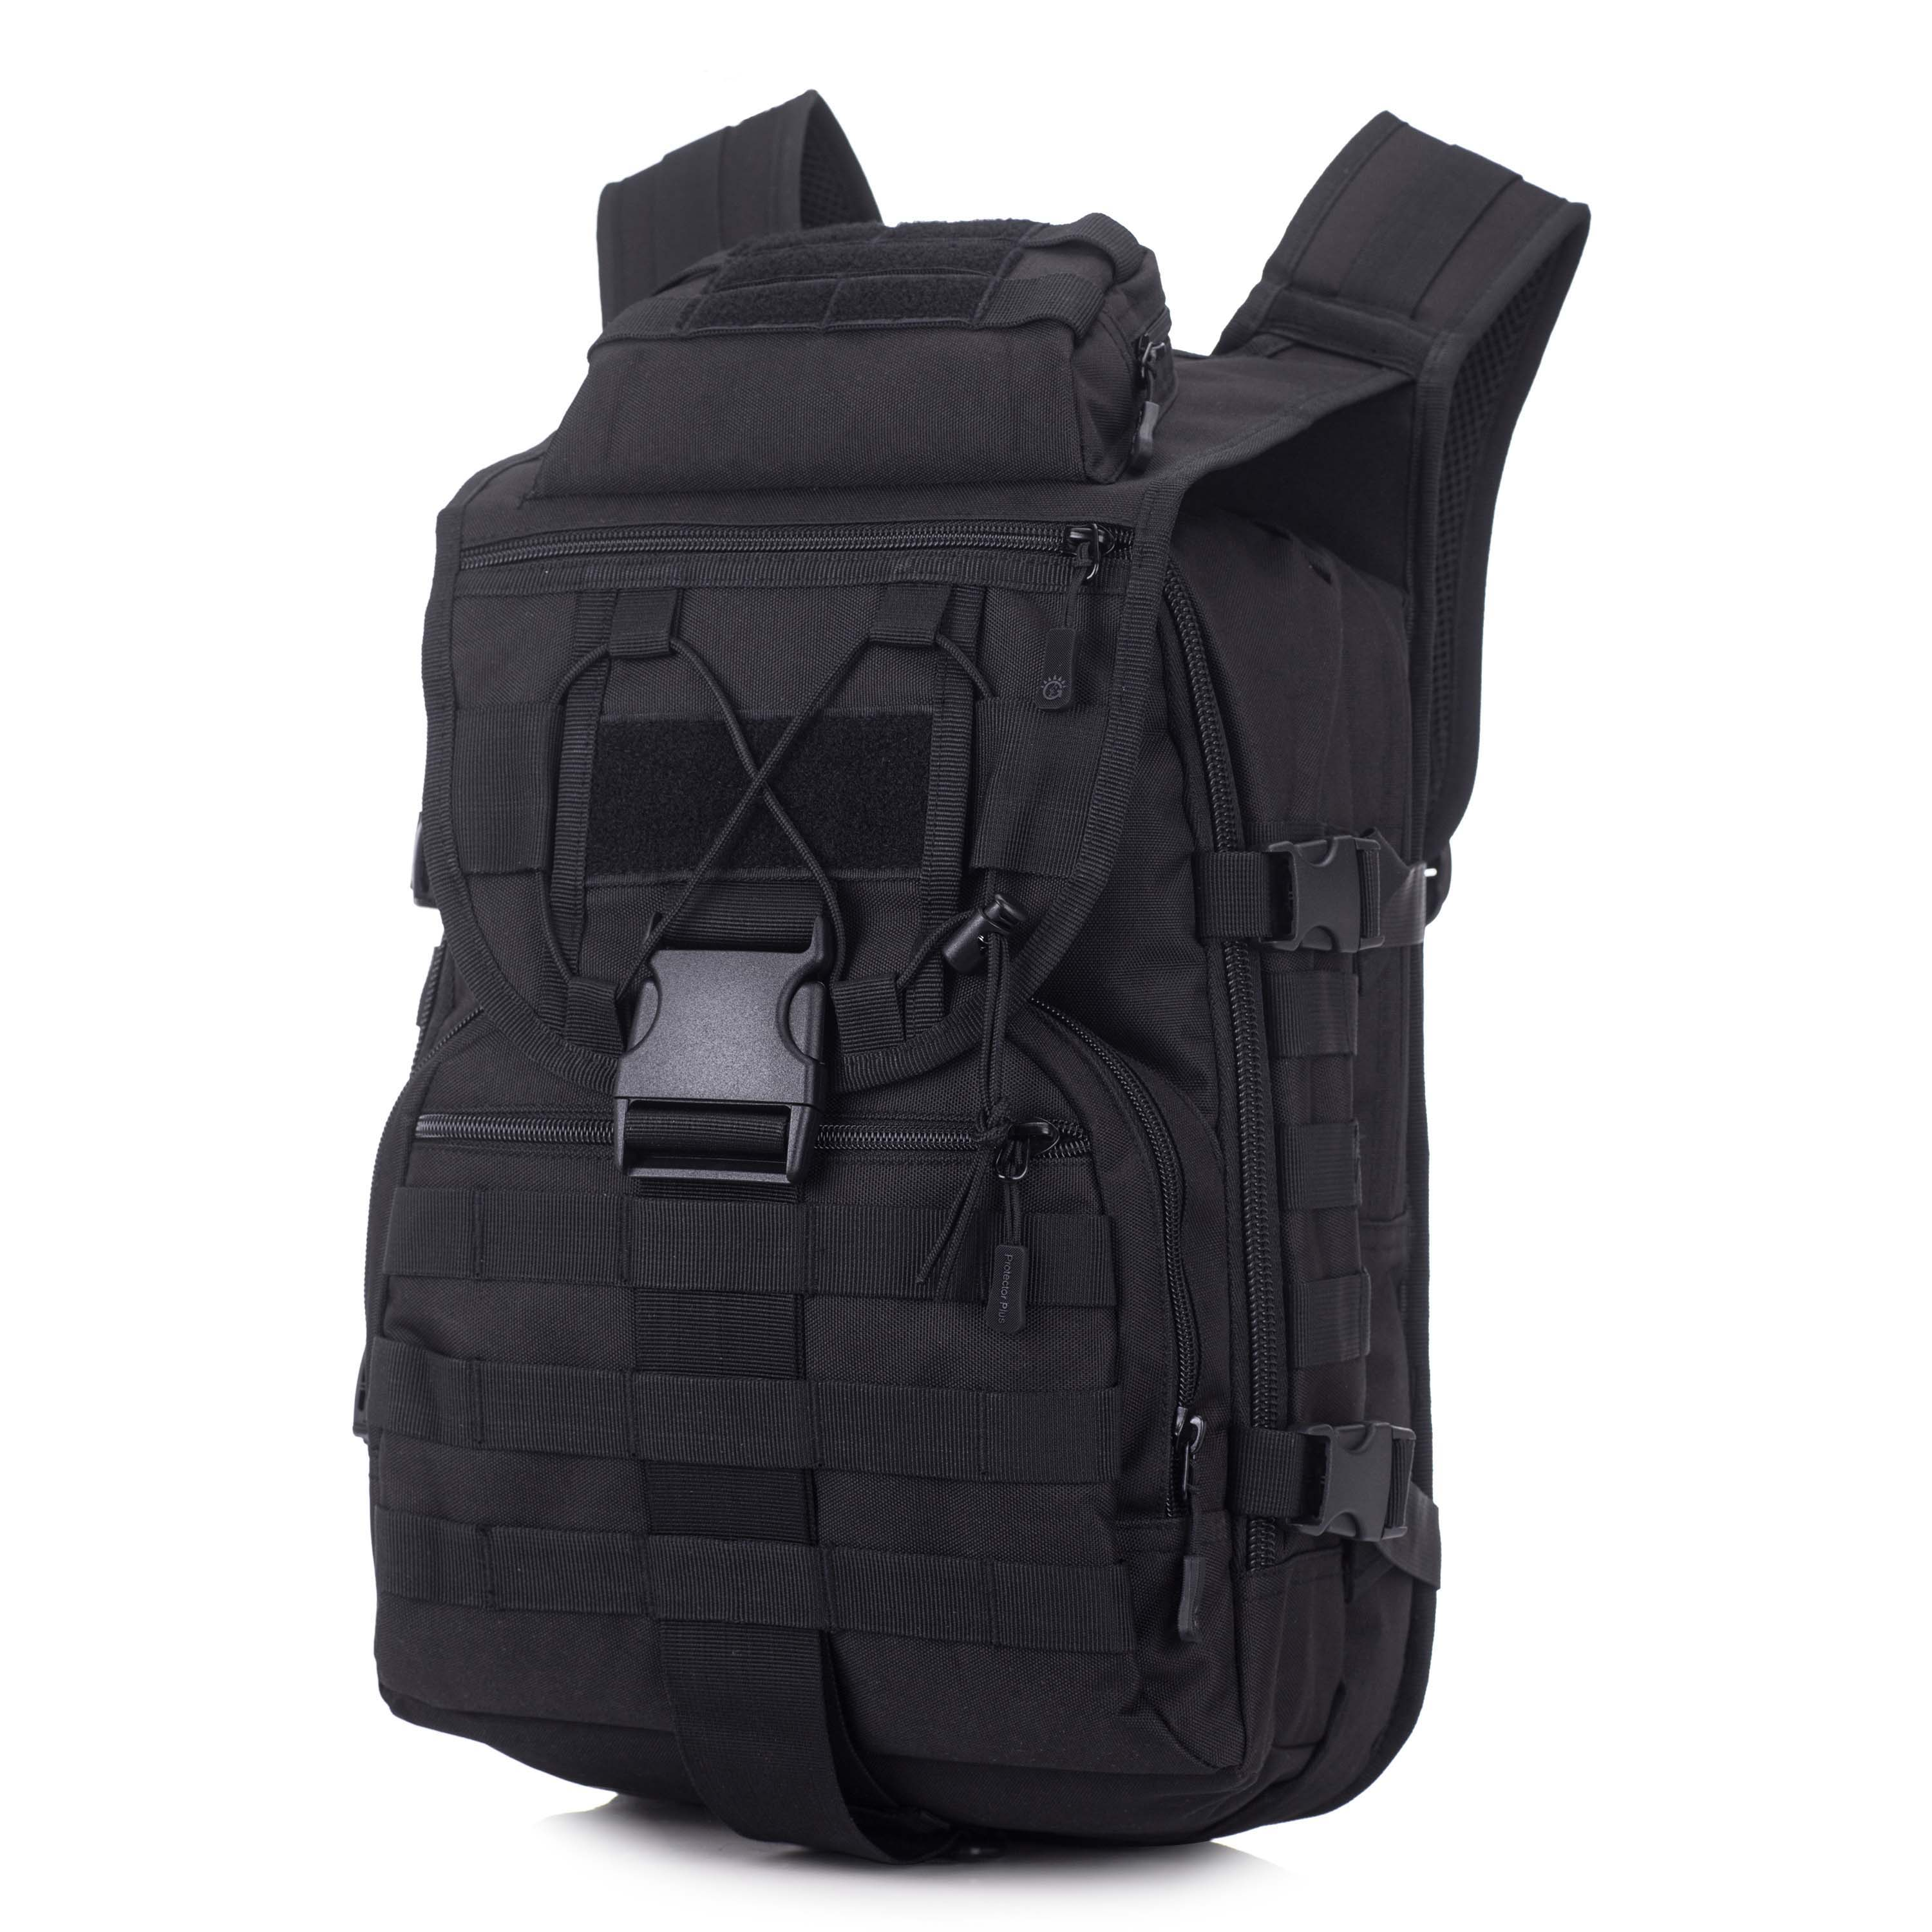 40L-Military-Tactical-Backpack-Assault-Pack-MOLLE-Bug-Out-Bag-Army-Backpack-Trek thumbnail 33